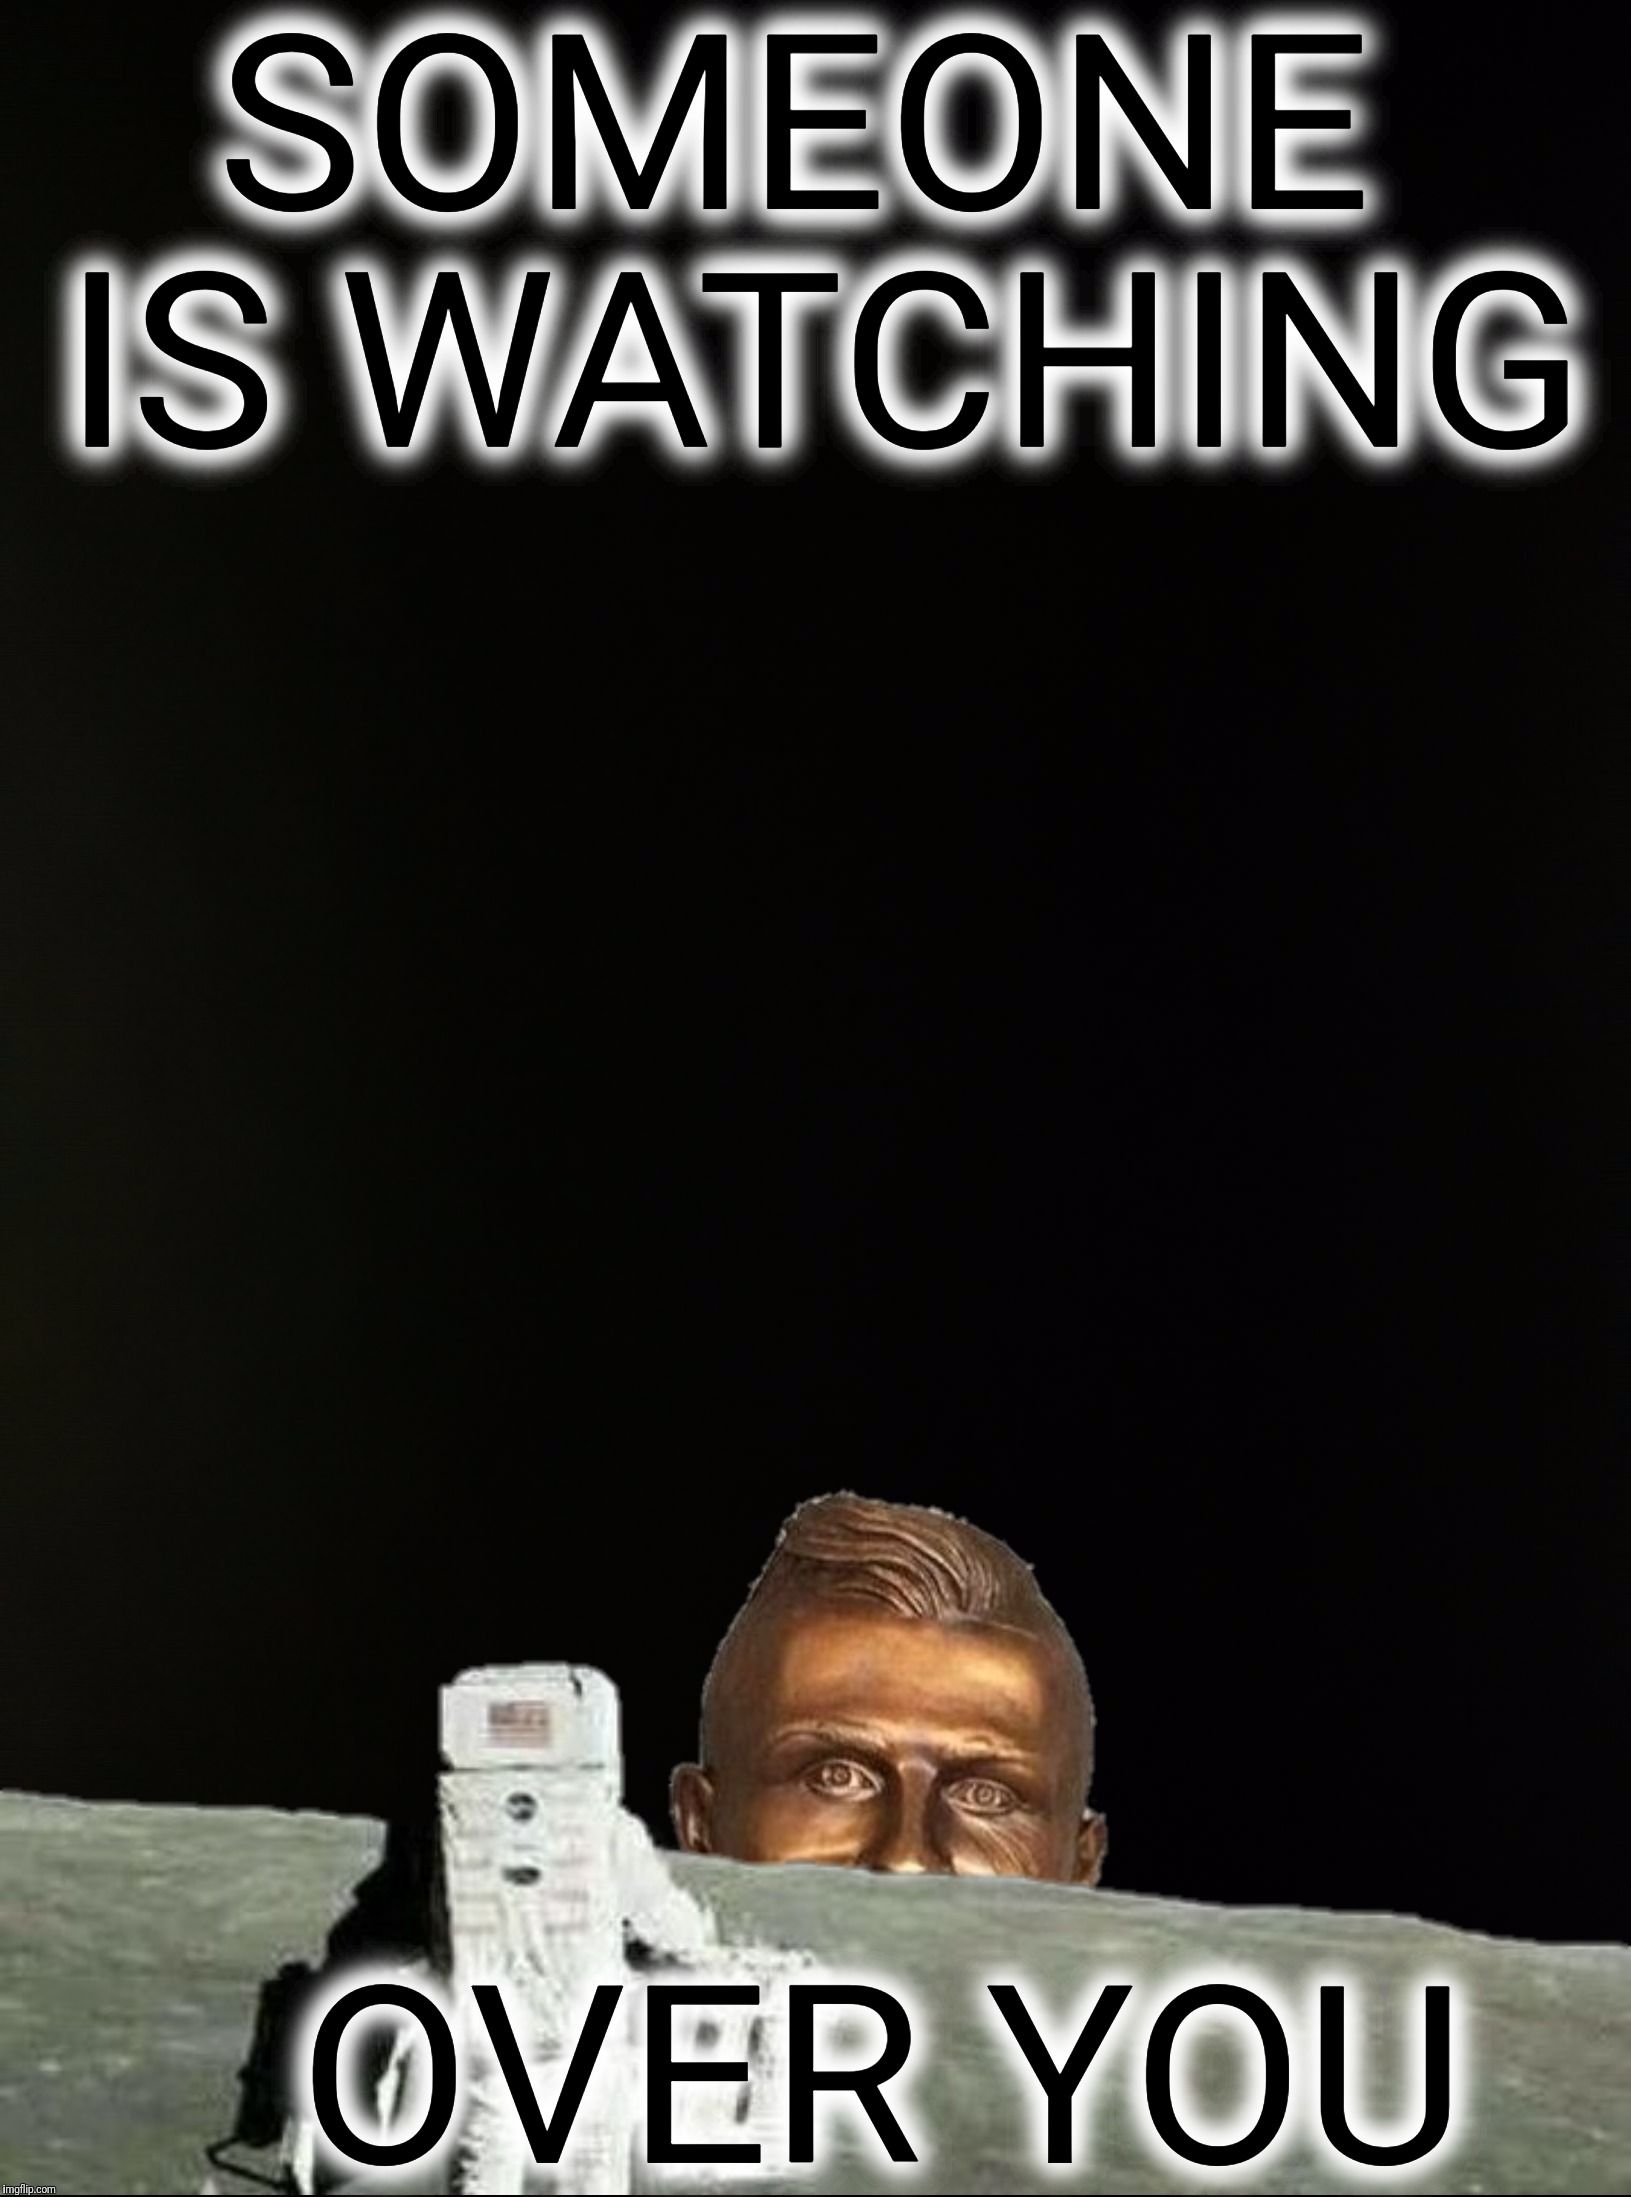 SOMEONE IS WATCHING OVER YOU | made w/ Imgflip meme maker